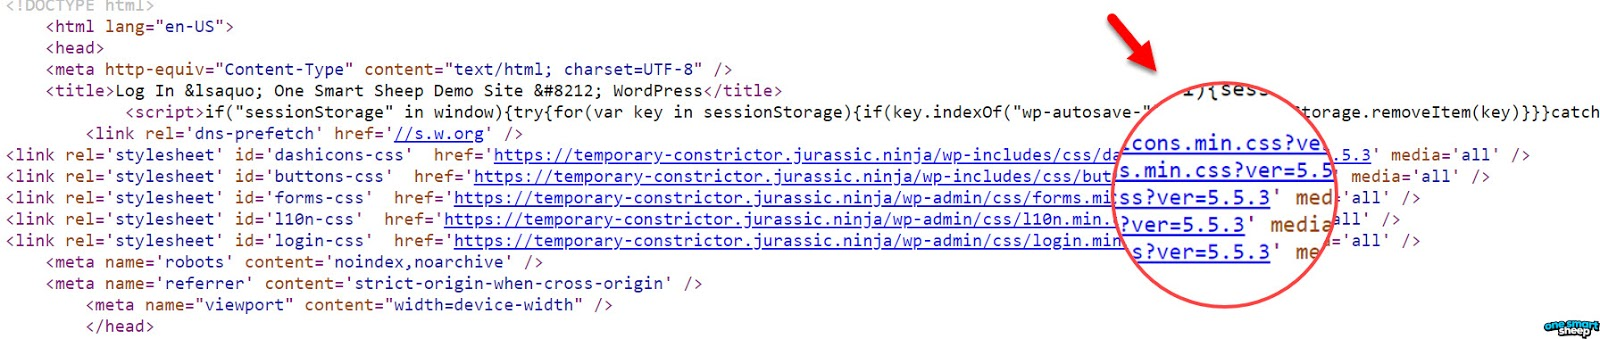 Check WordPress Version From Source Code